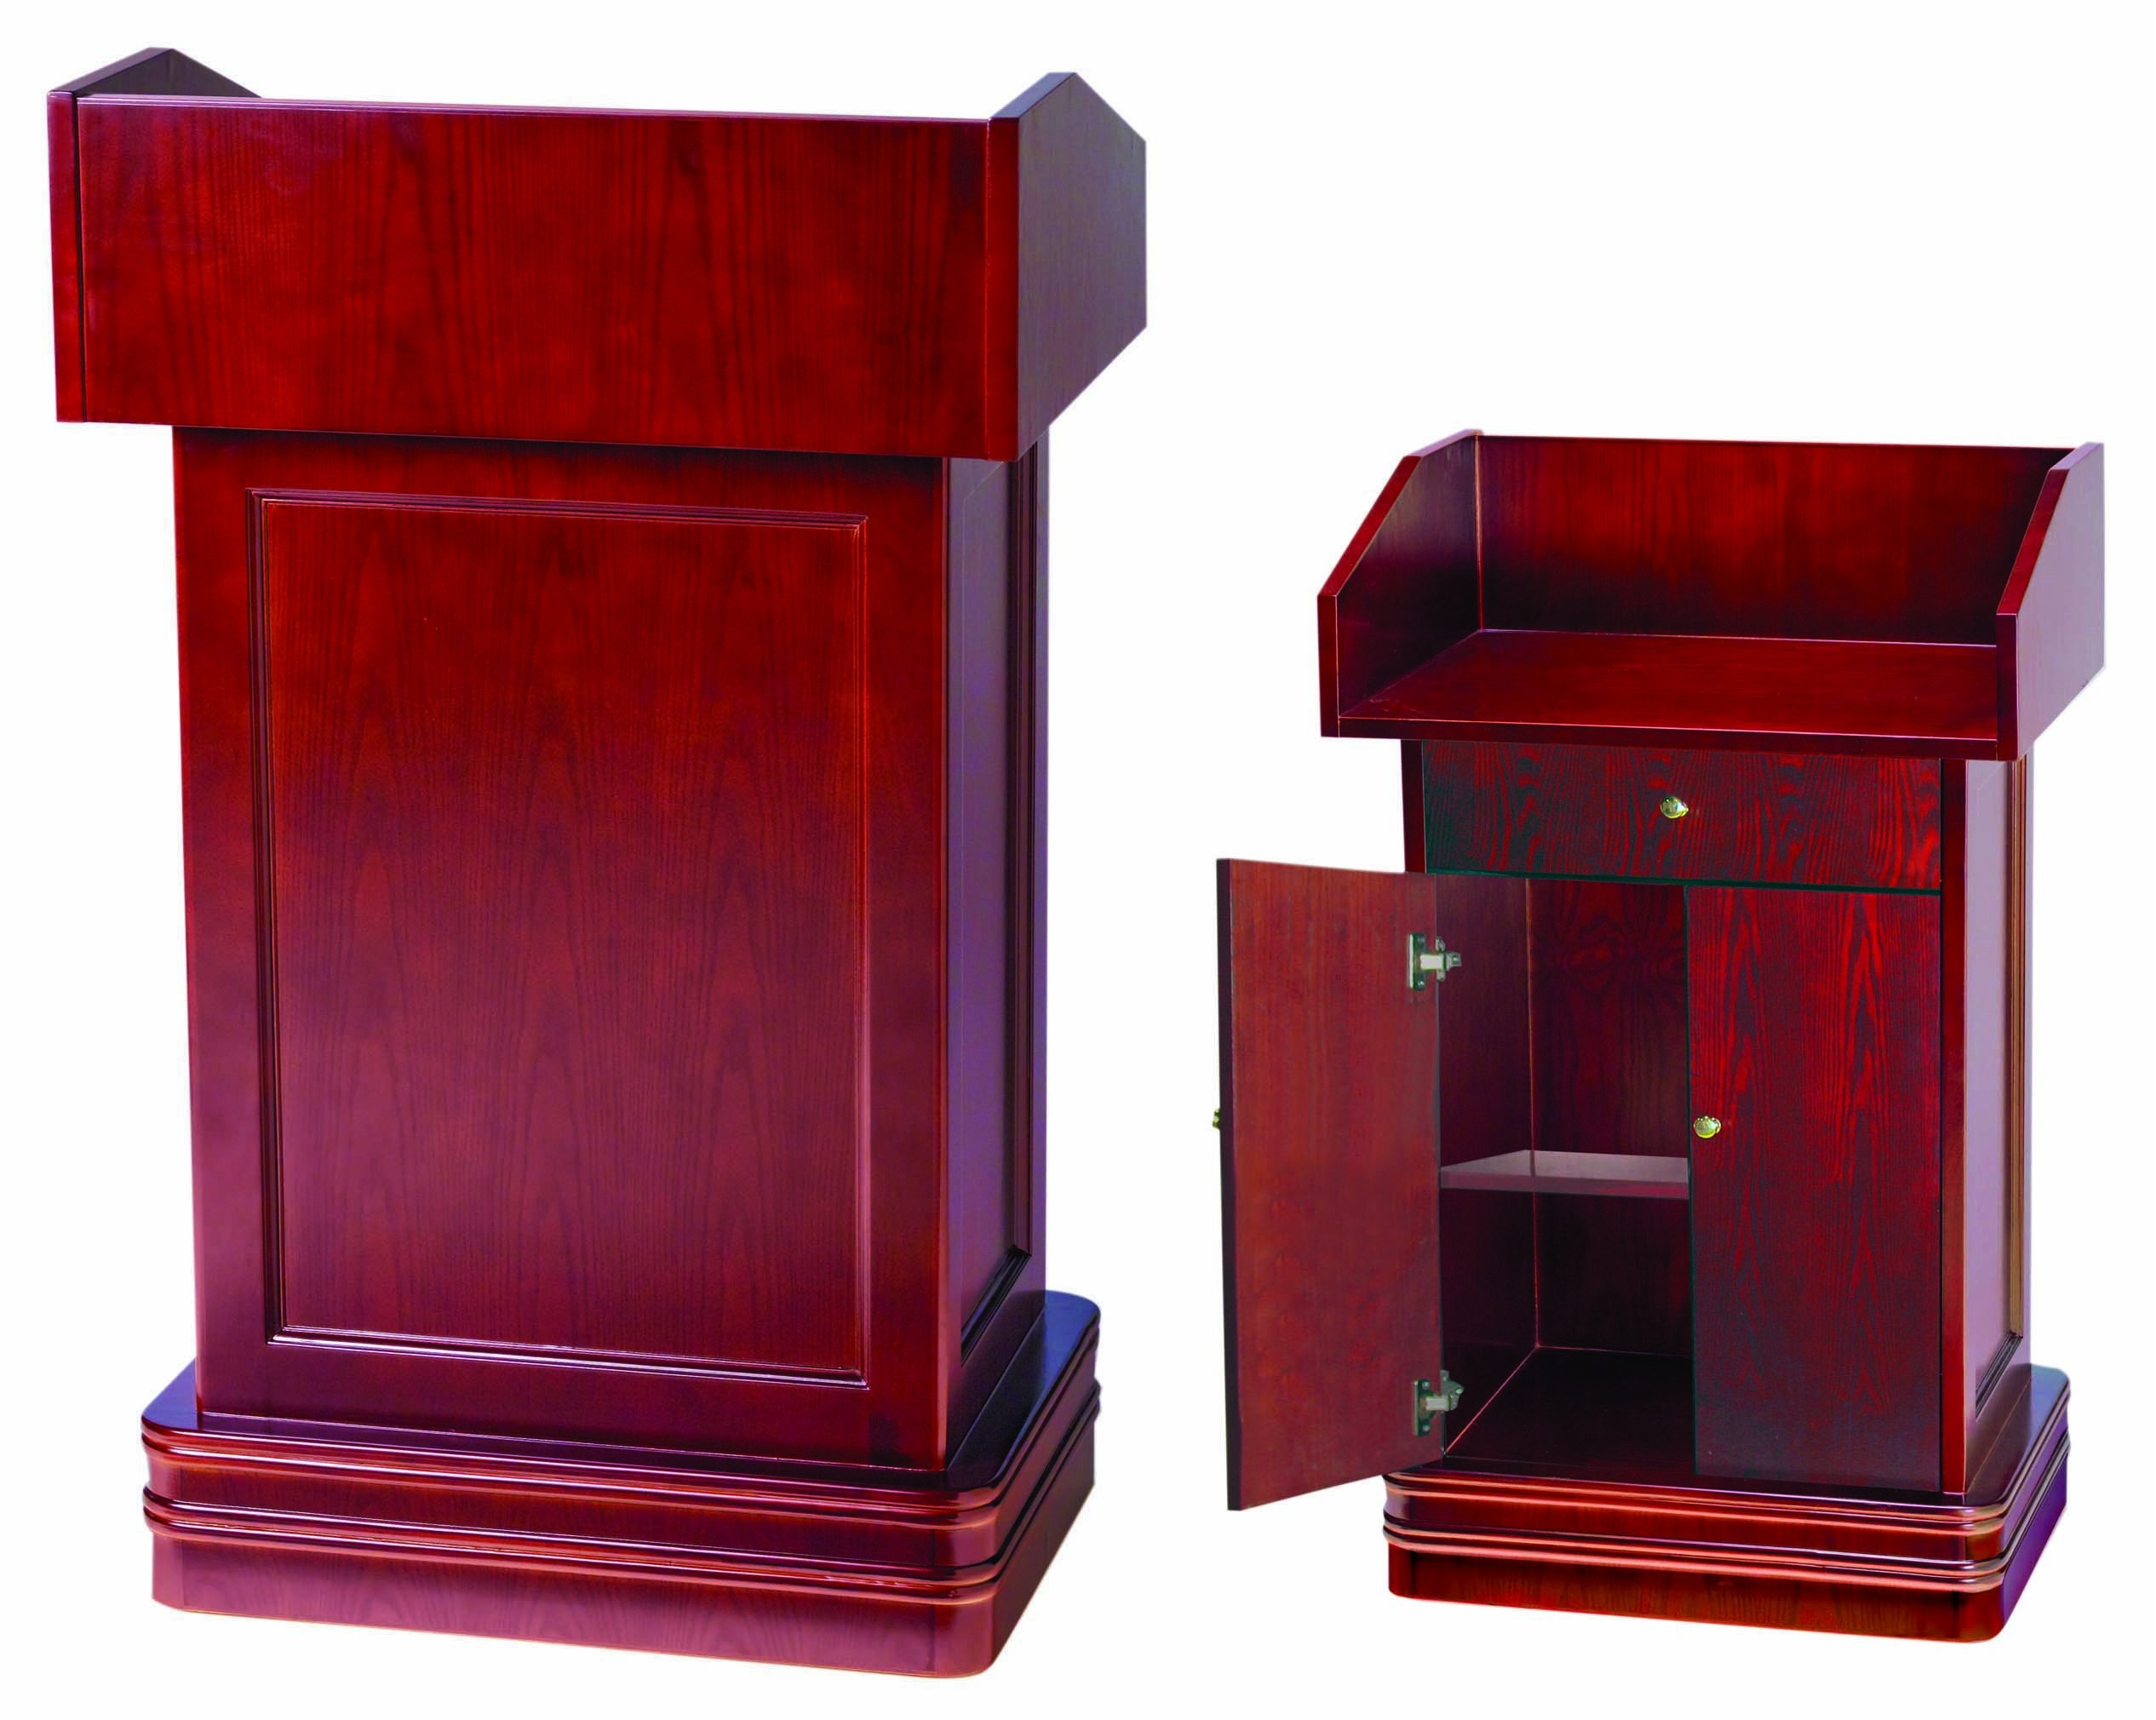 Hard Wood Cherry Finish Podium 2 with Adjustable Shelf and Doors